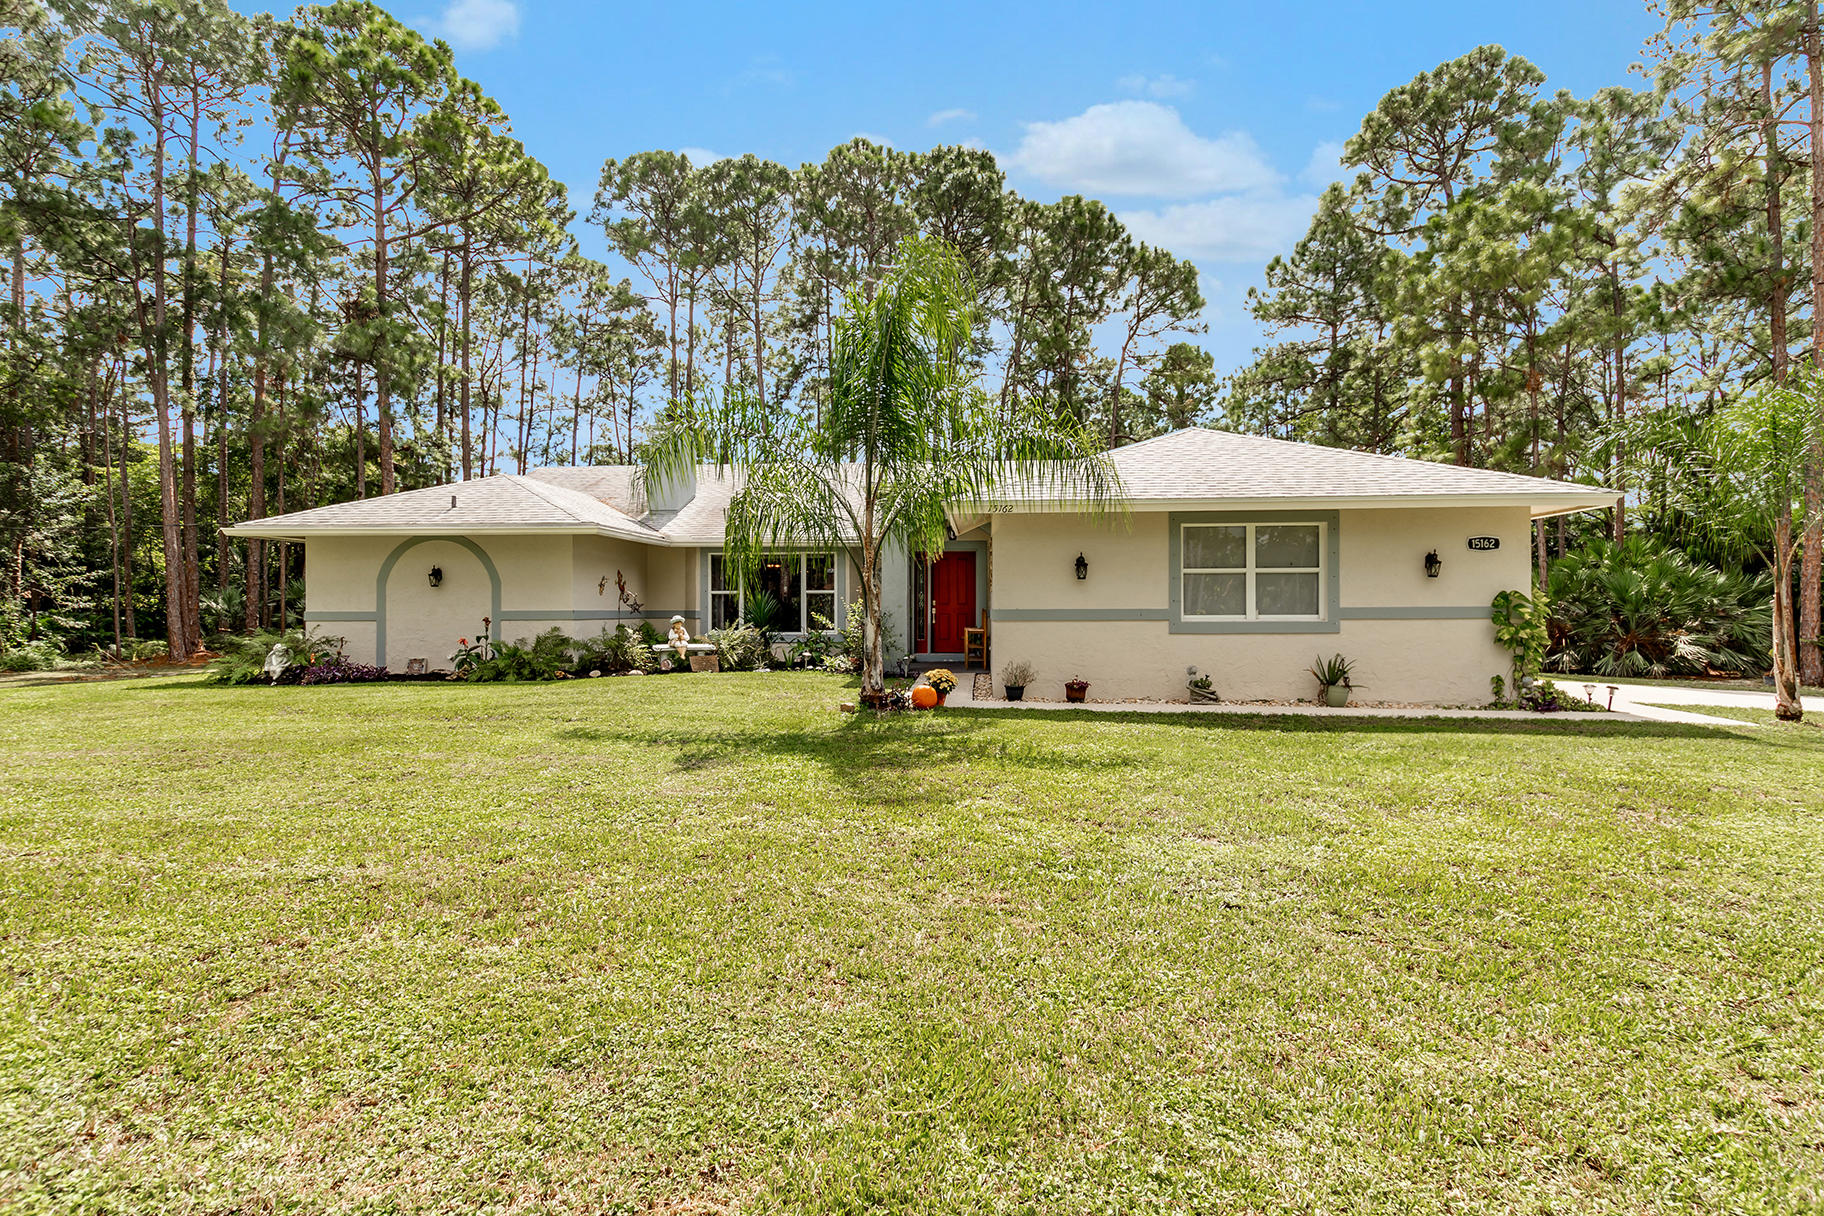 15162 86th Road N, Loxahatchee in Palm Beach County, FL 33470 Home for Sale